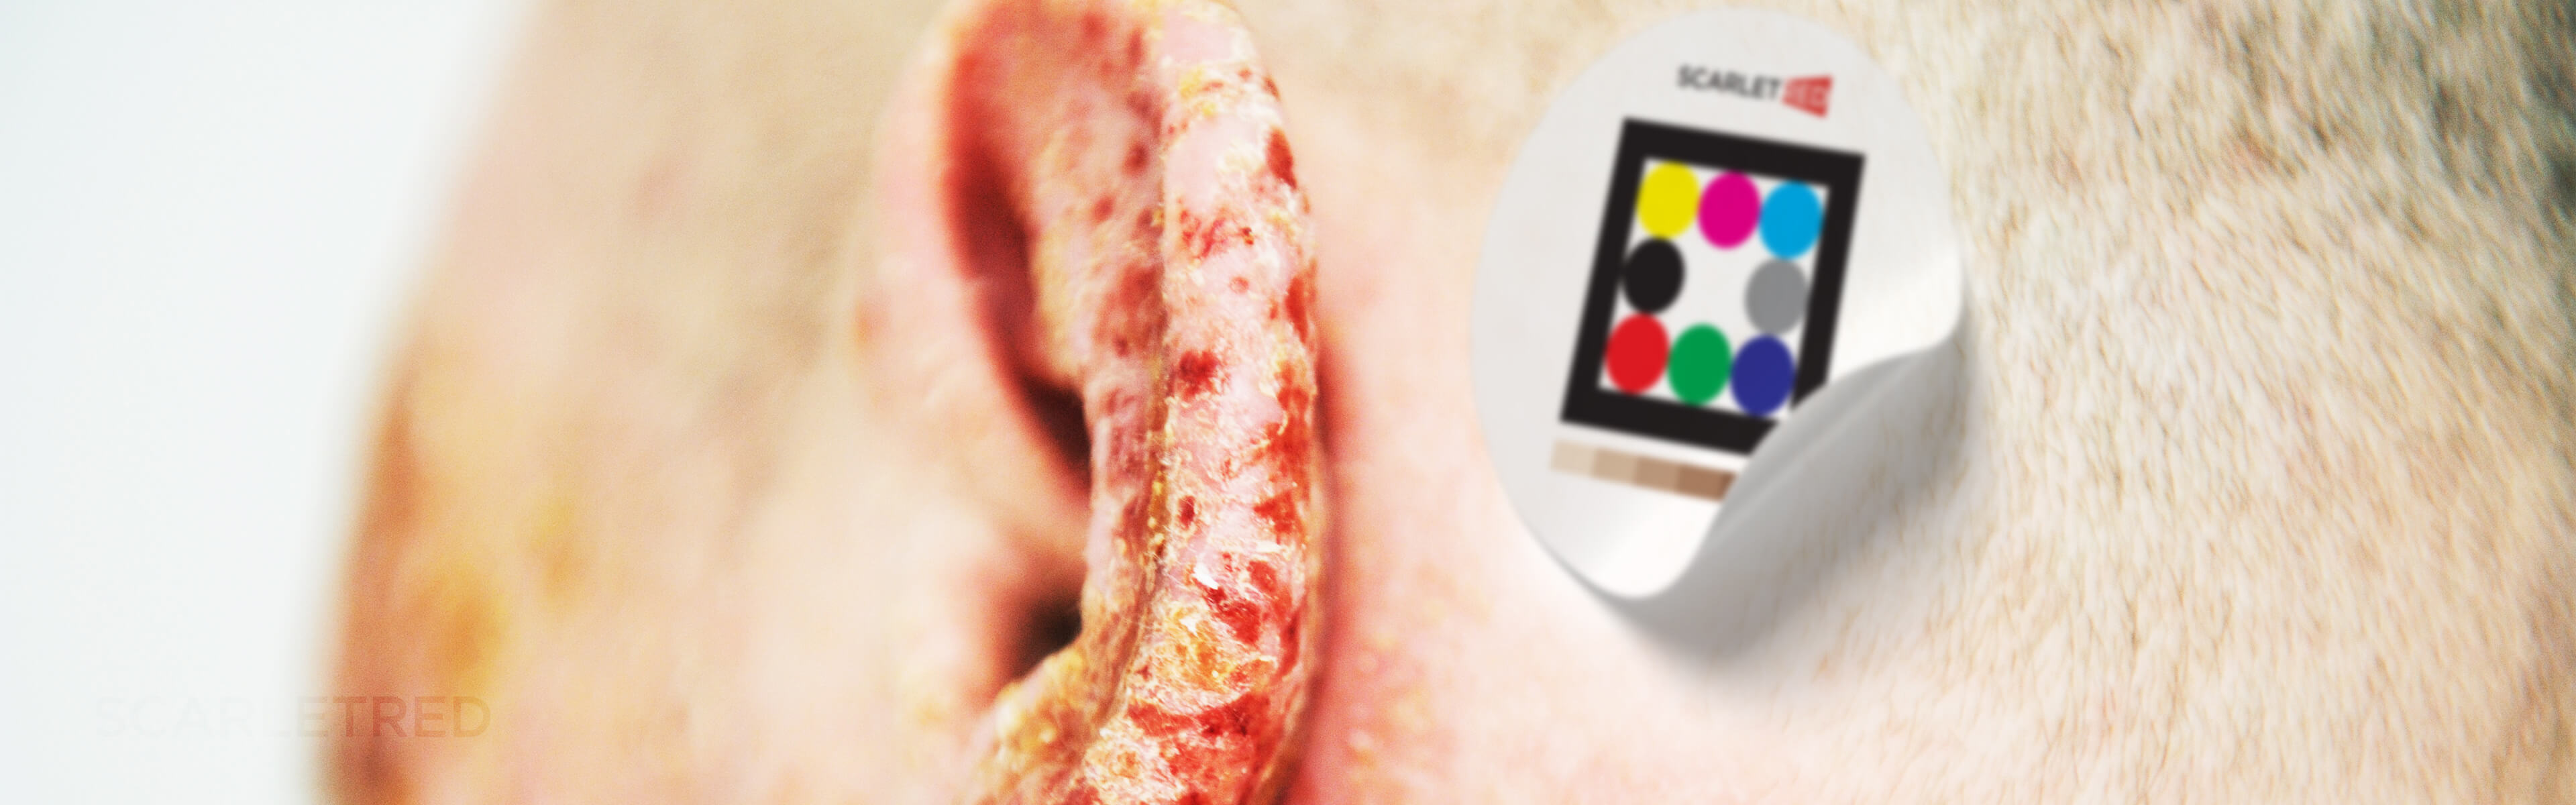 atopic dermatitis on the ear with Scarletred skin patch